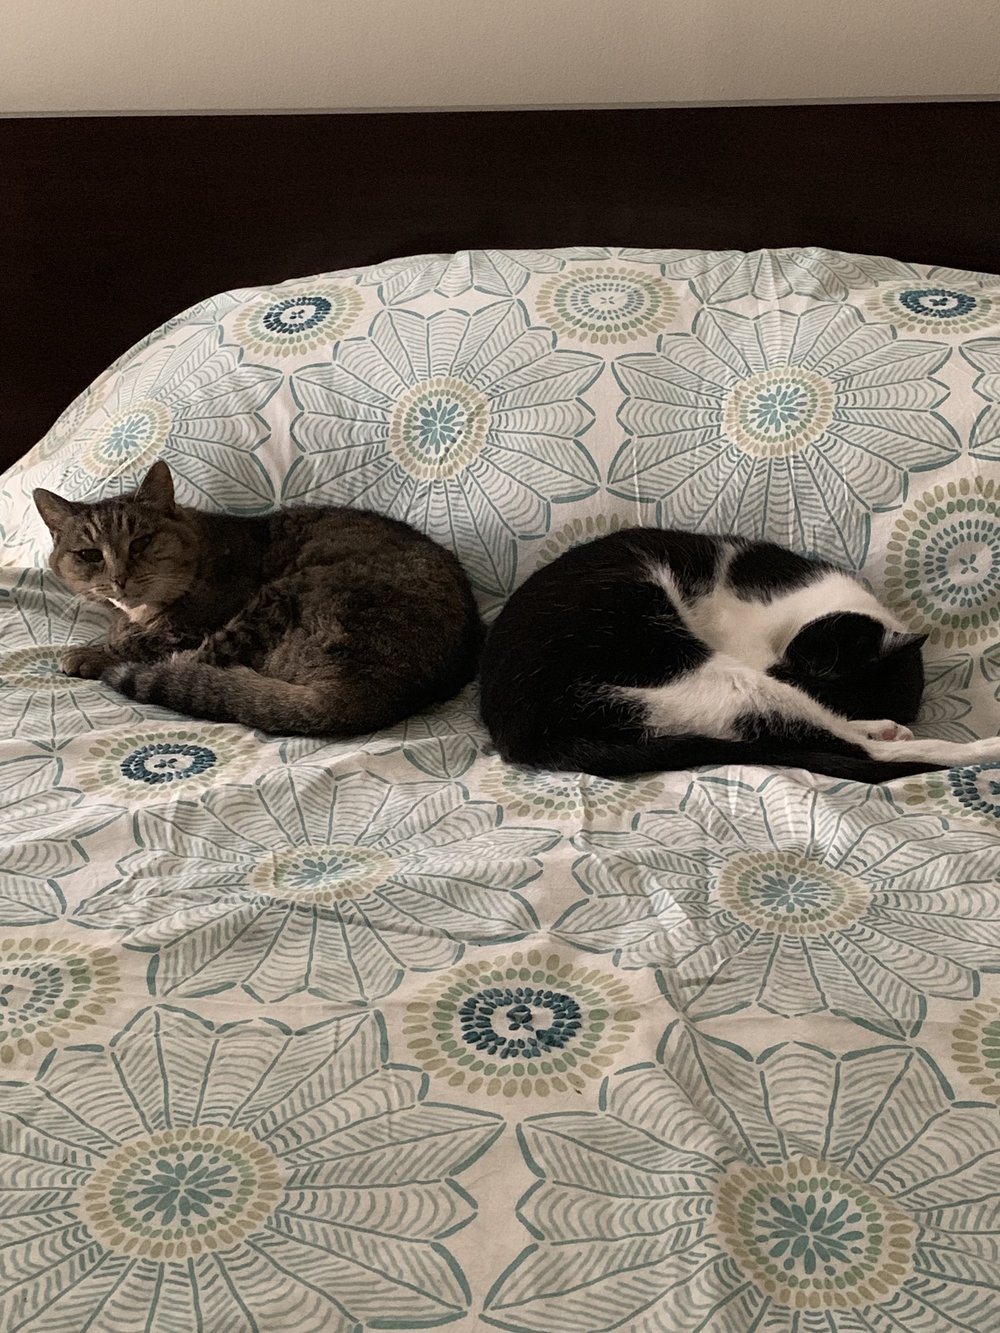 Two cats - Lefty named Stormy (who caught me taking this). Beside Tiny who looks a bit like a prawn right now.